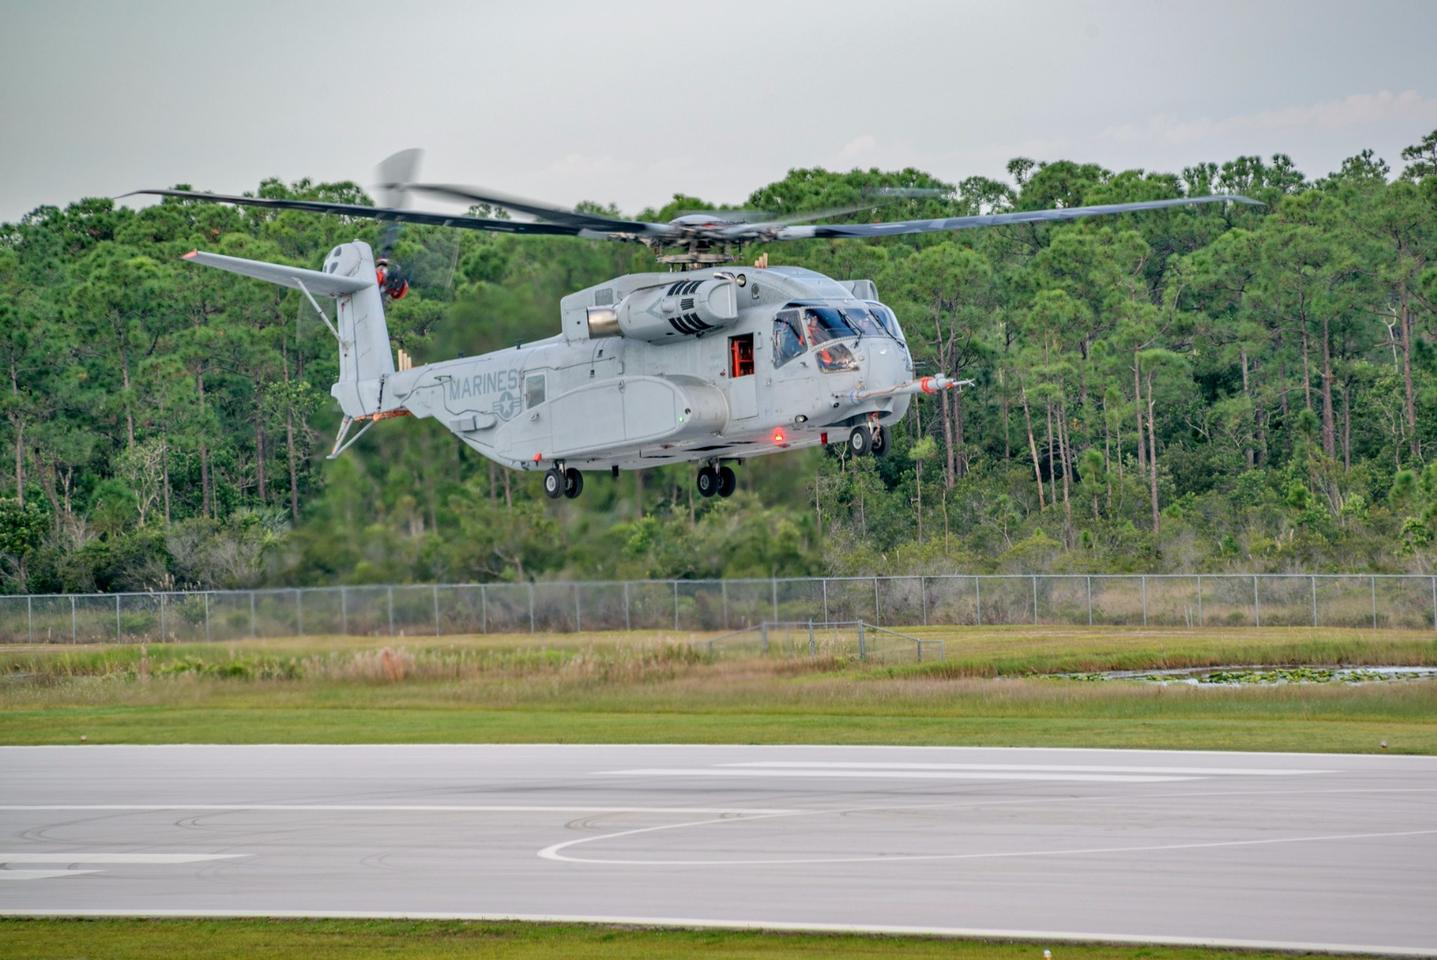 The CH-53K King Stallion will be the heaviest helicopter in the US military inventory